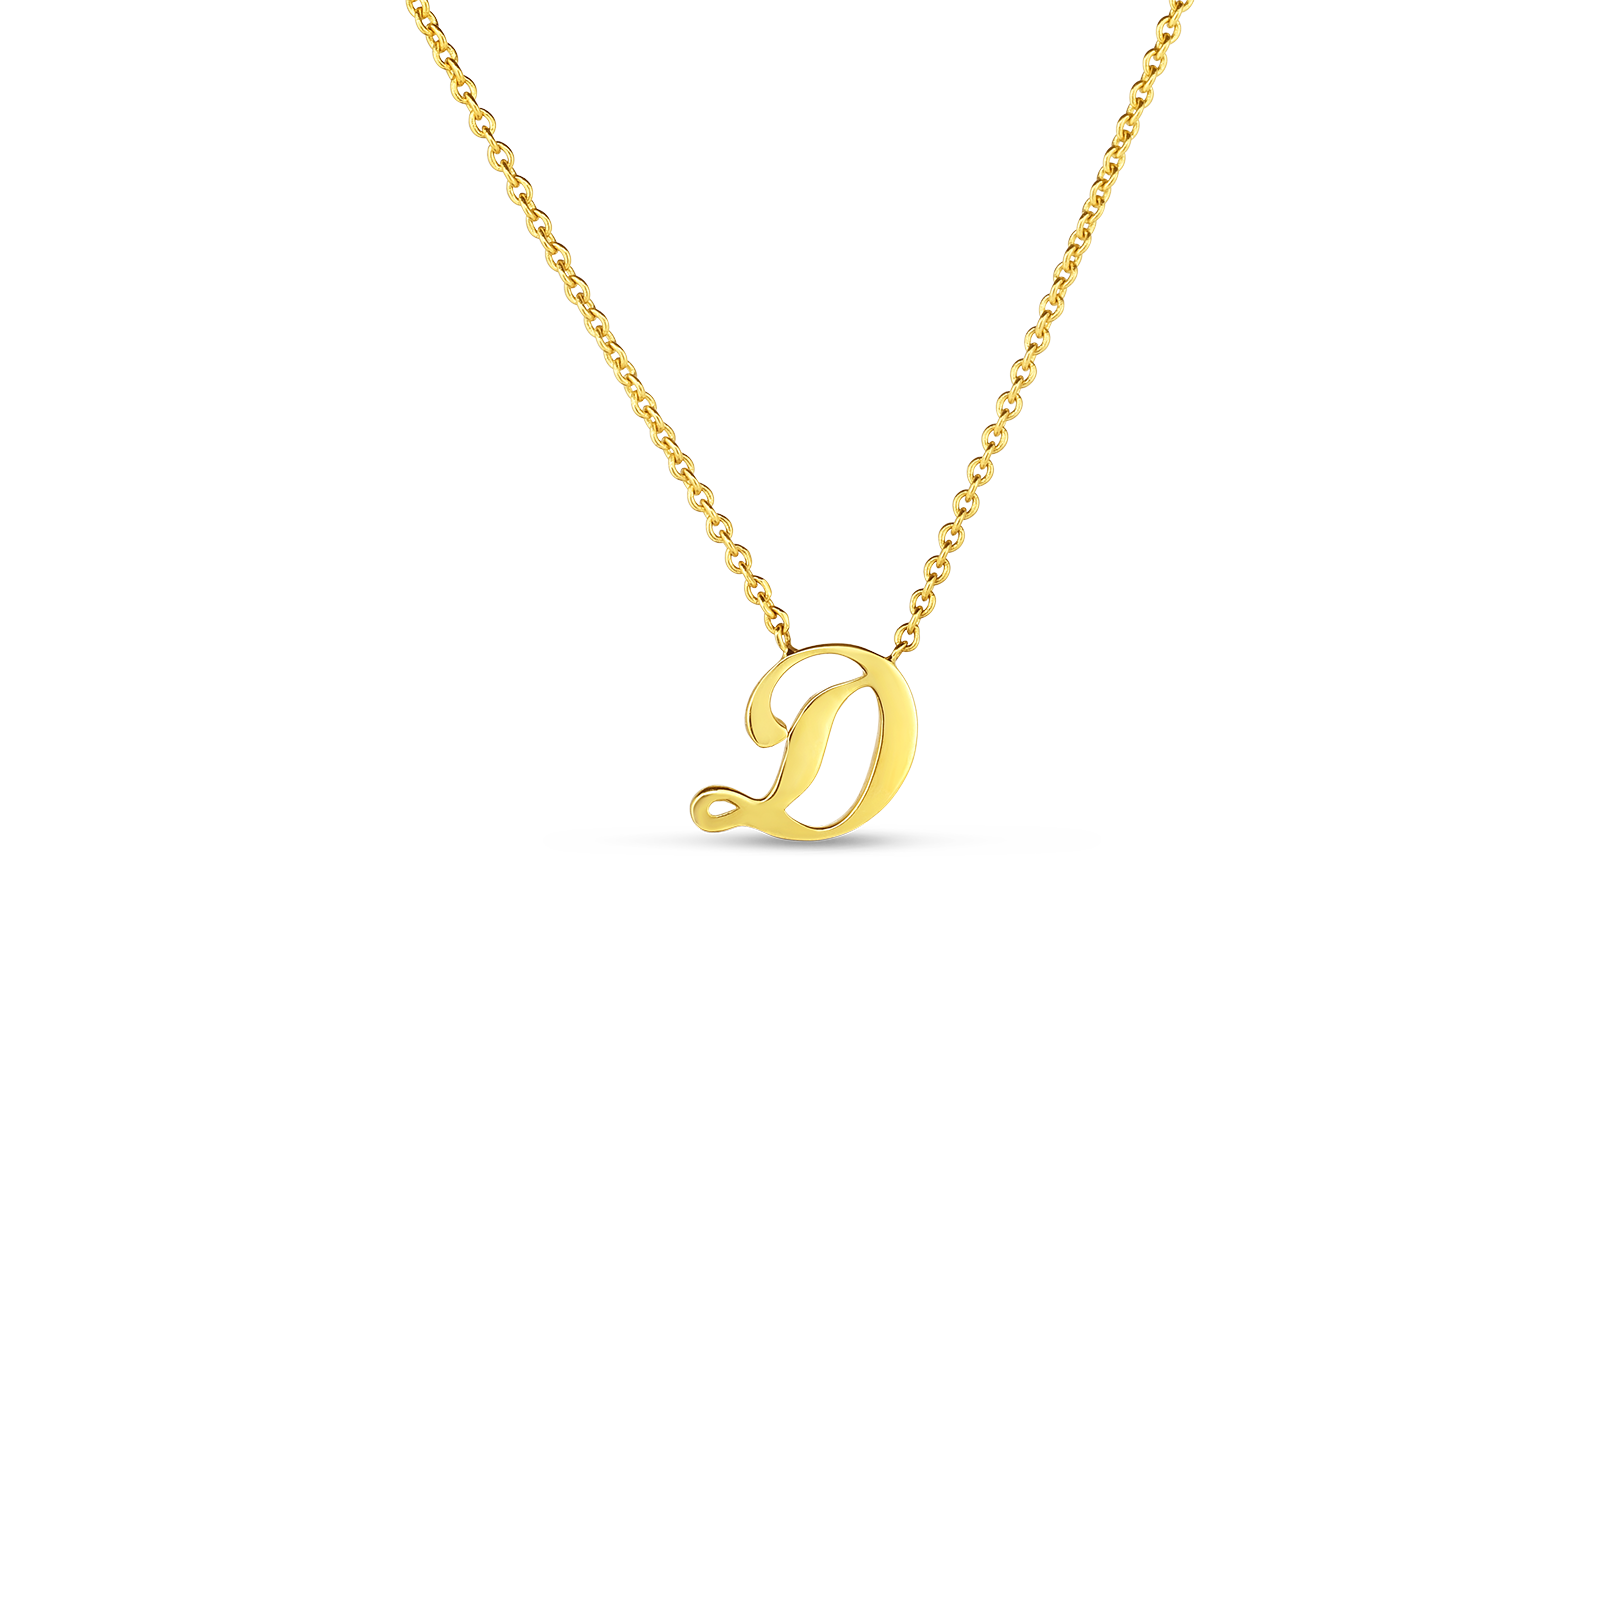 18k Small Script Initial 'D' Pendant On Chain